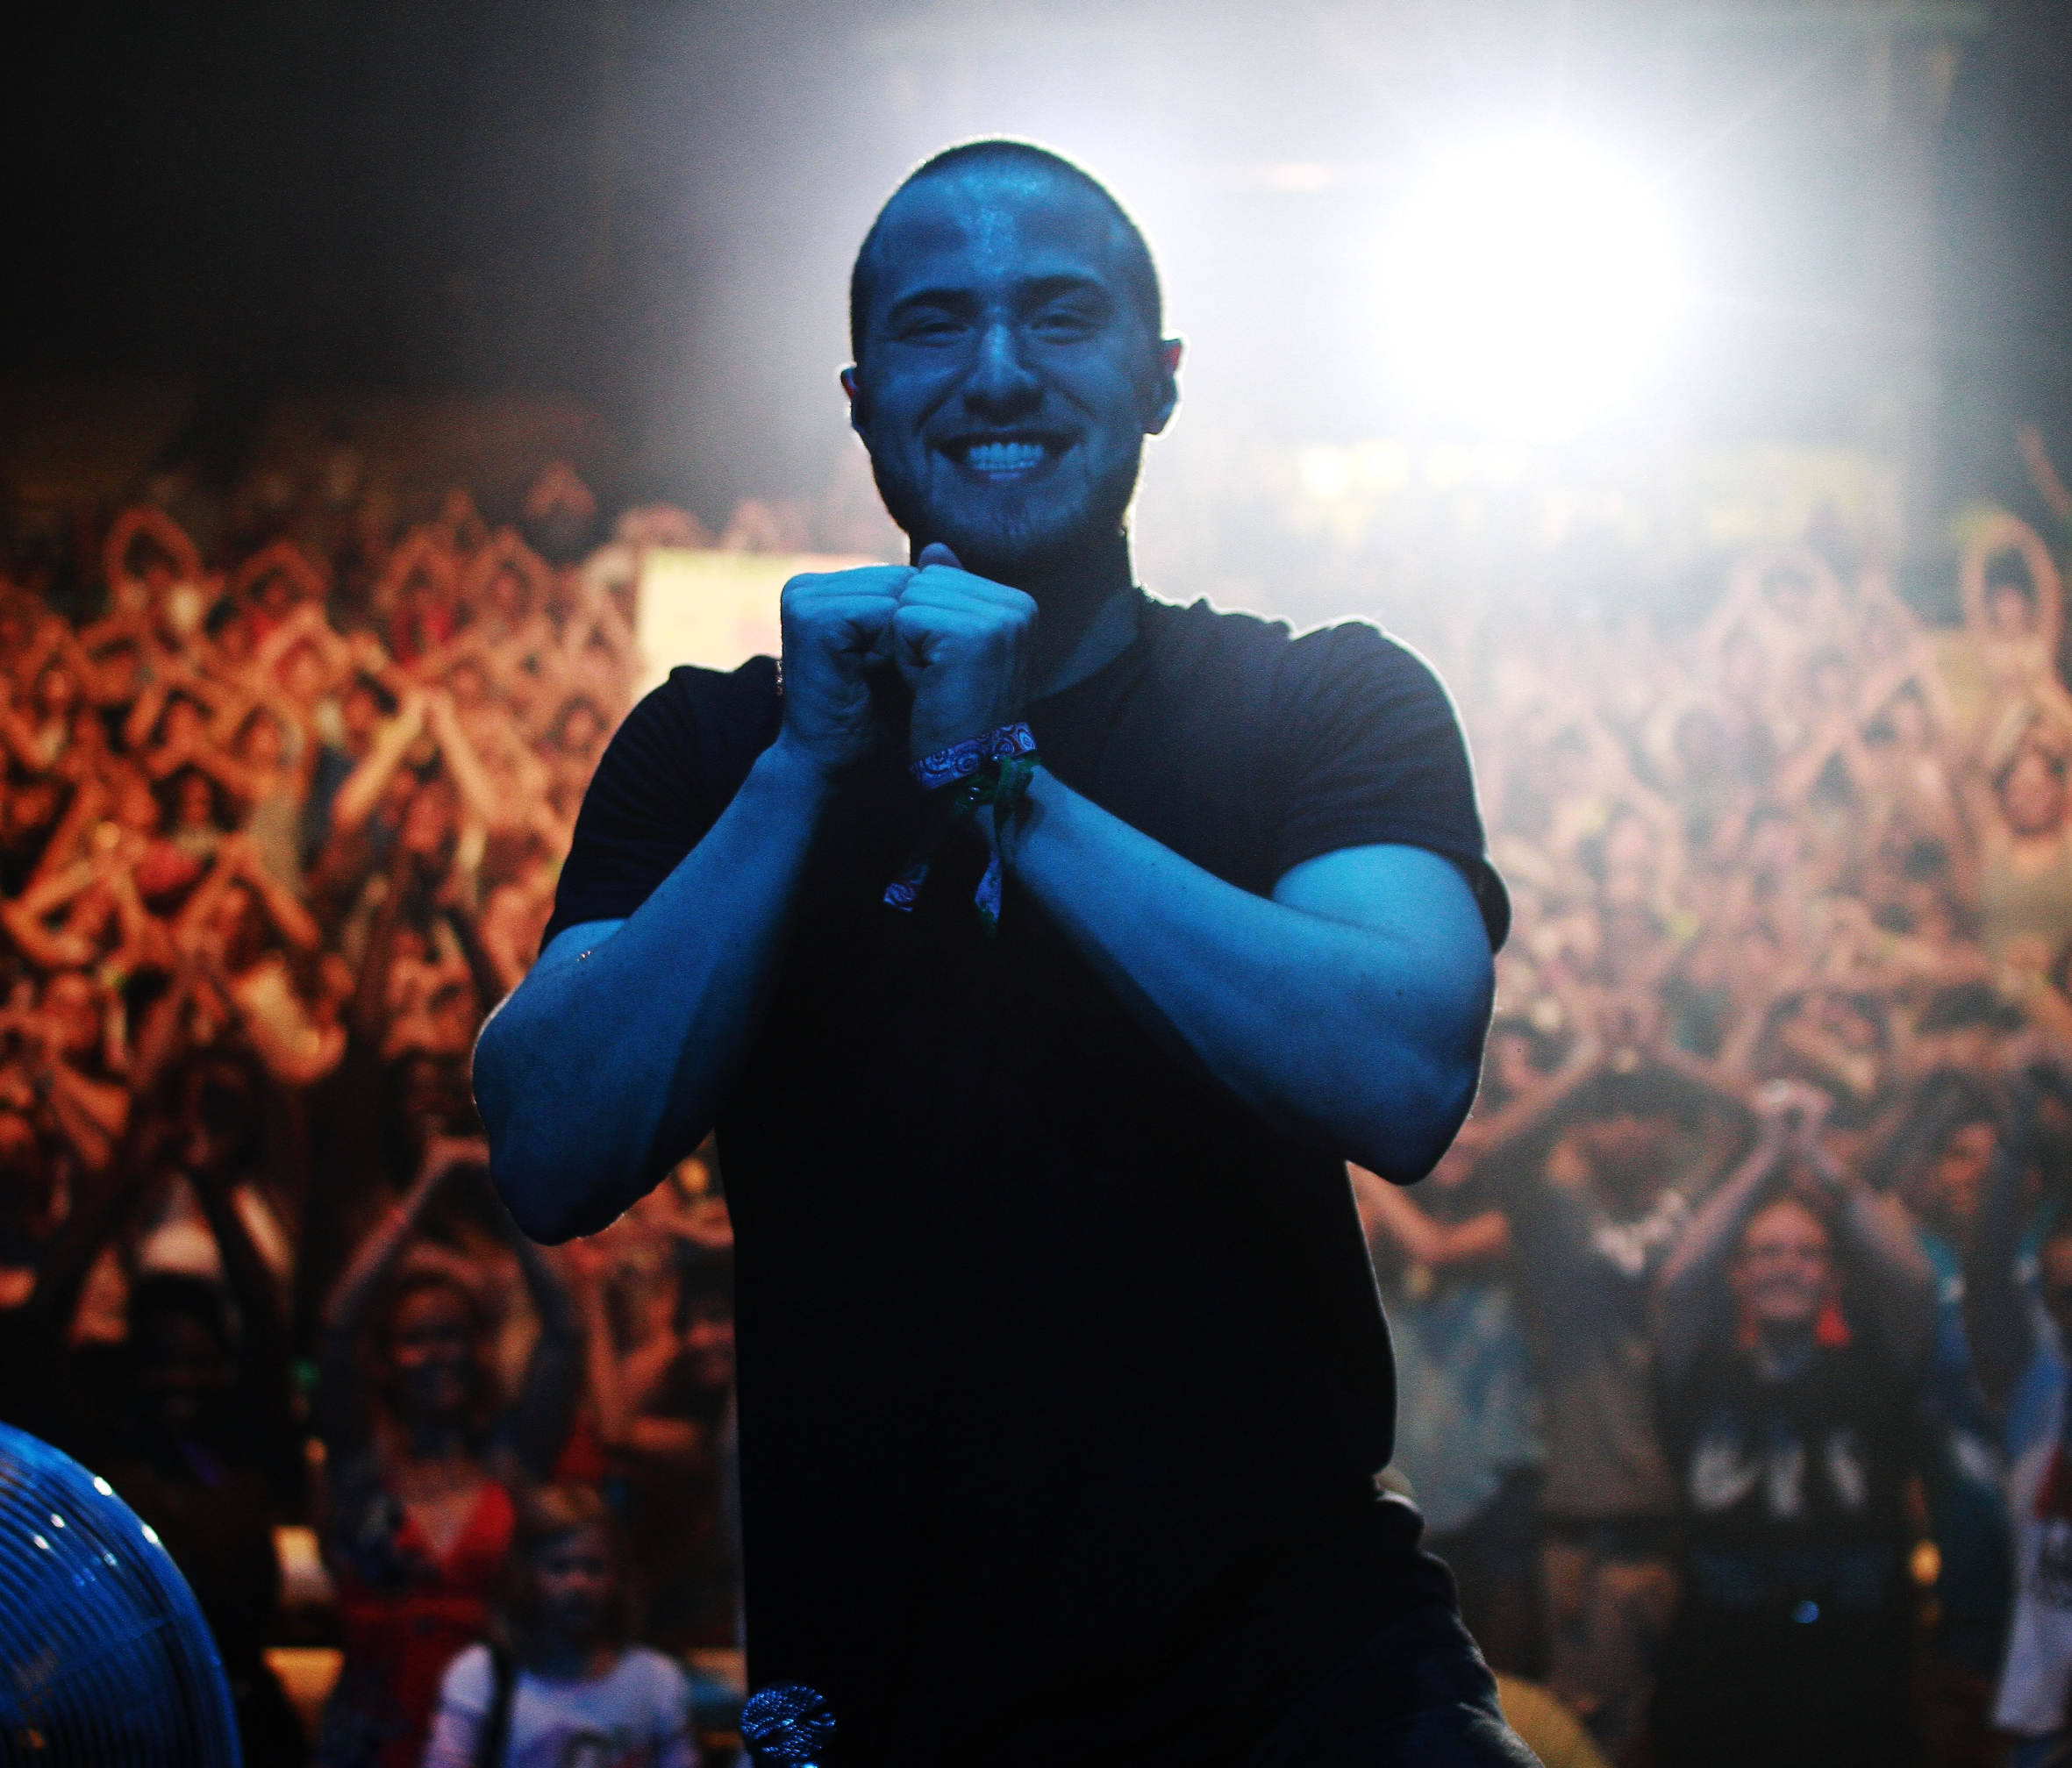 Mike Posner Widescreen